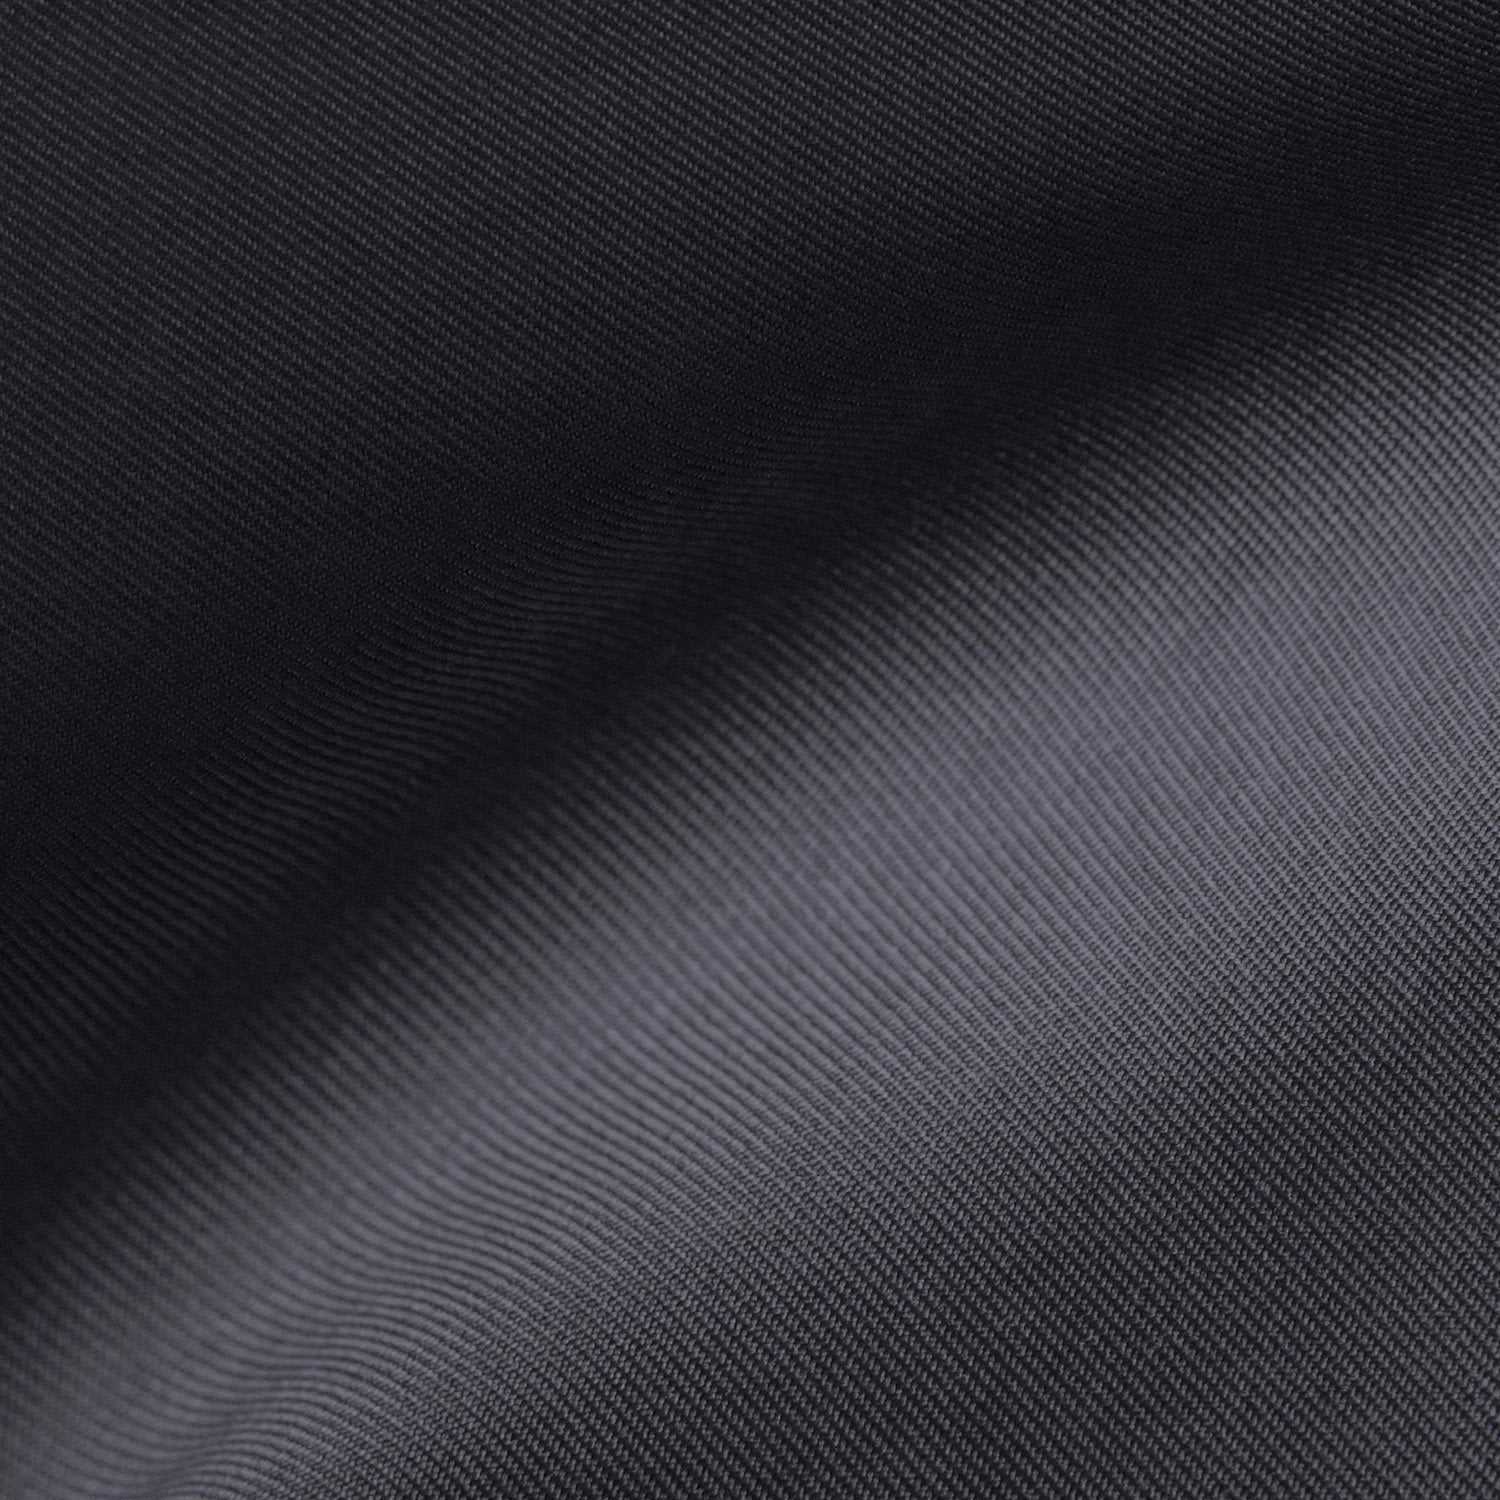 Gabardine Classy Twill Fabric By The Yard Available In